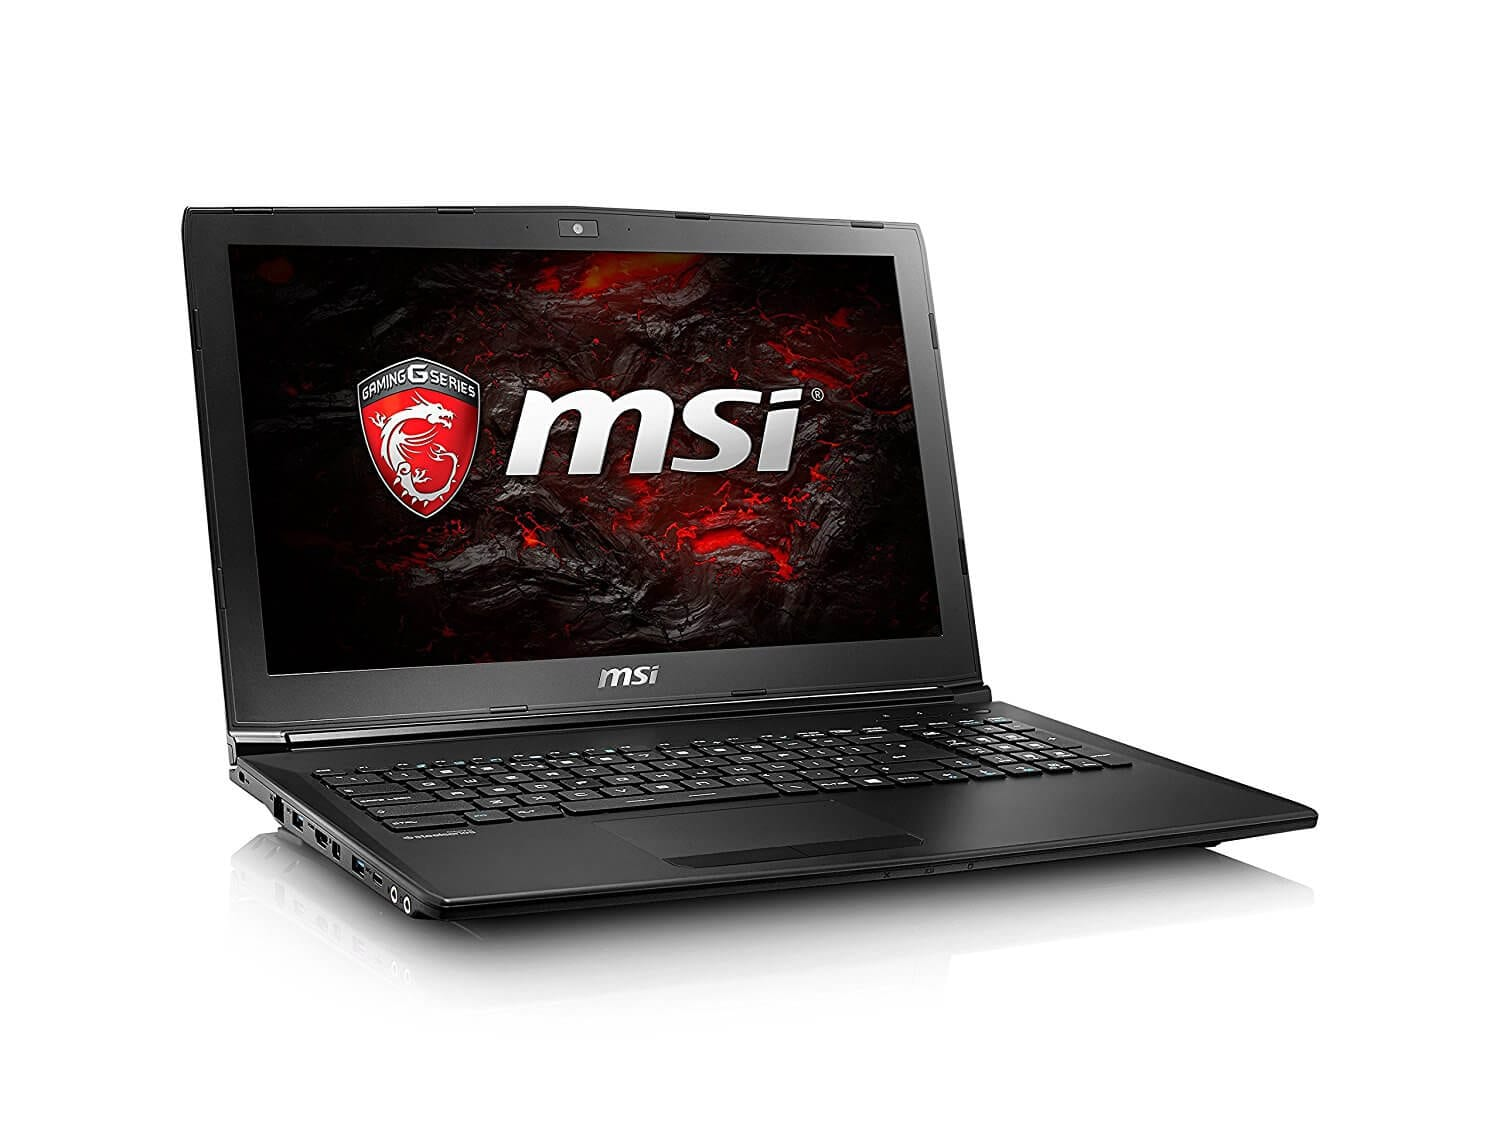 MSI GL62 6QC 484UK 15.6-Inch FHD Gaming Notebook: Best i5 gaming laptop under 600 GBP